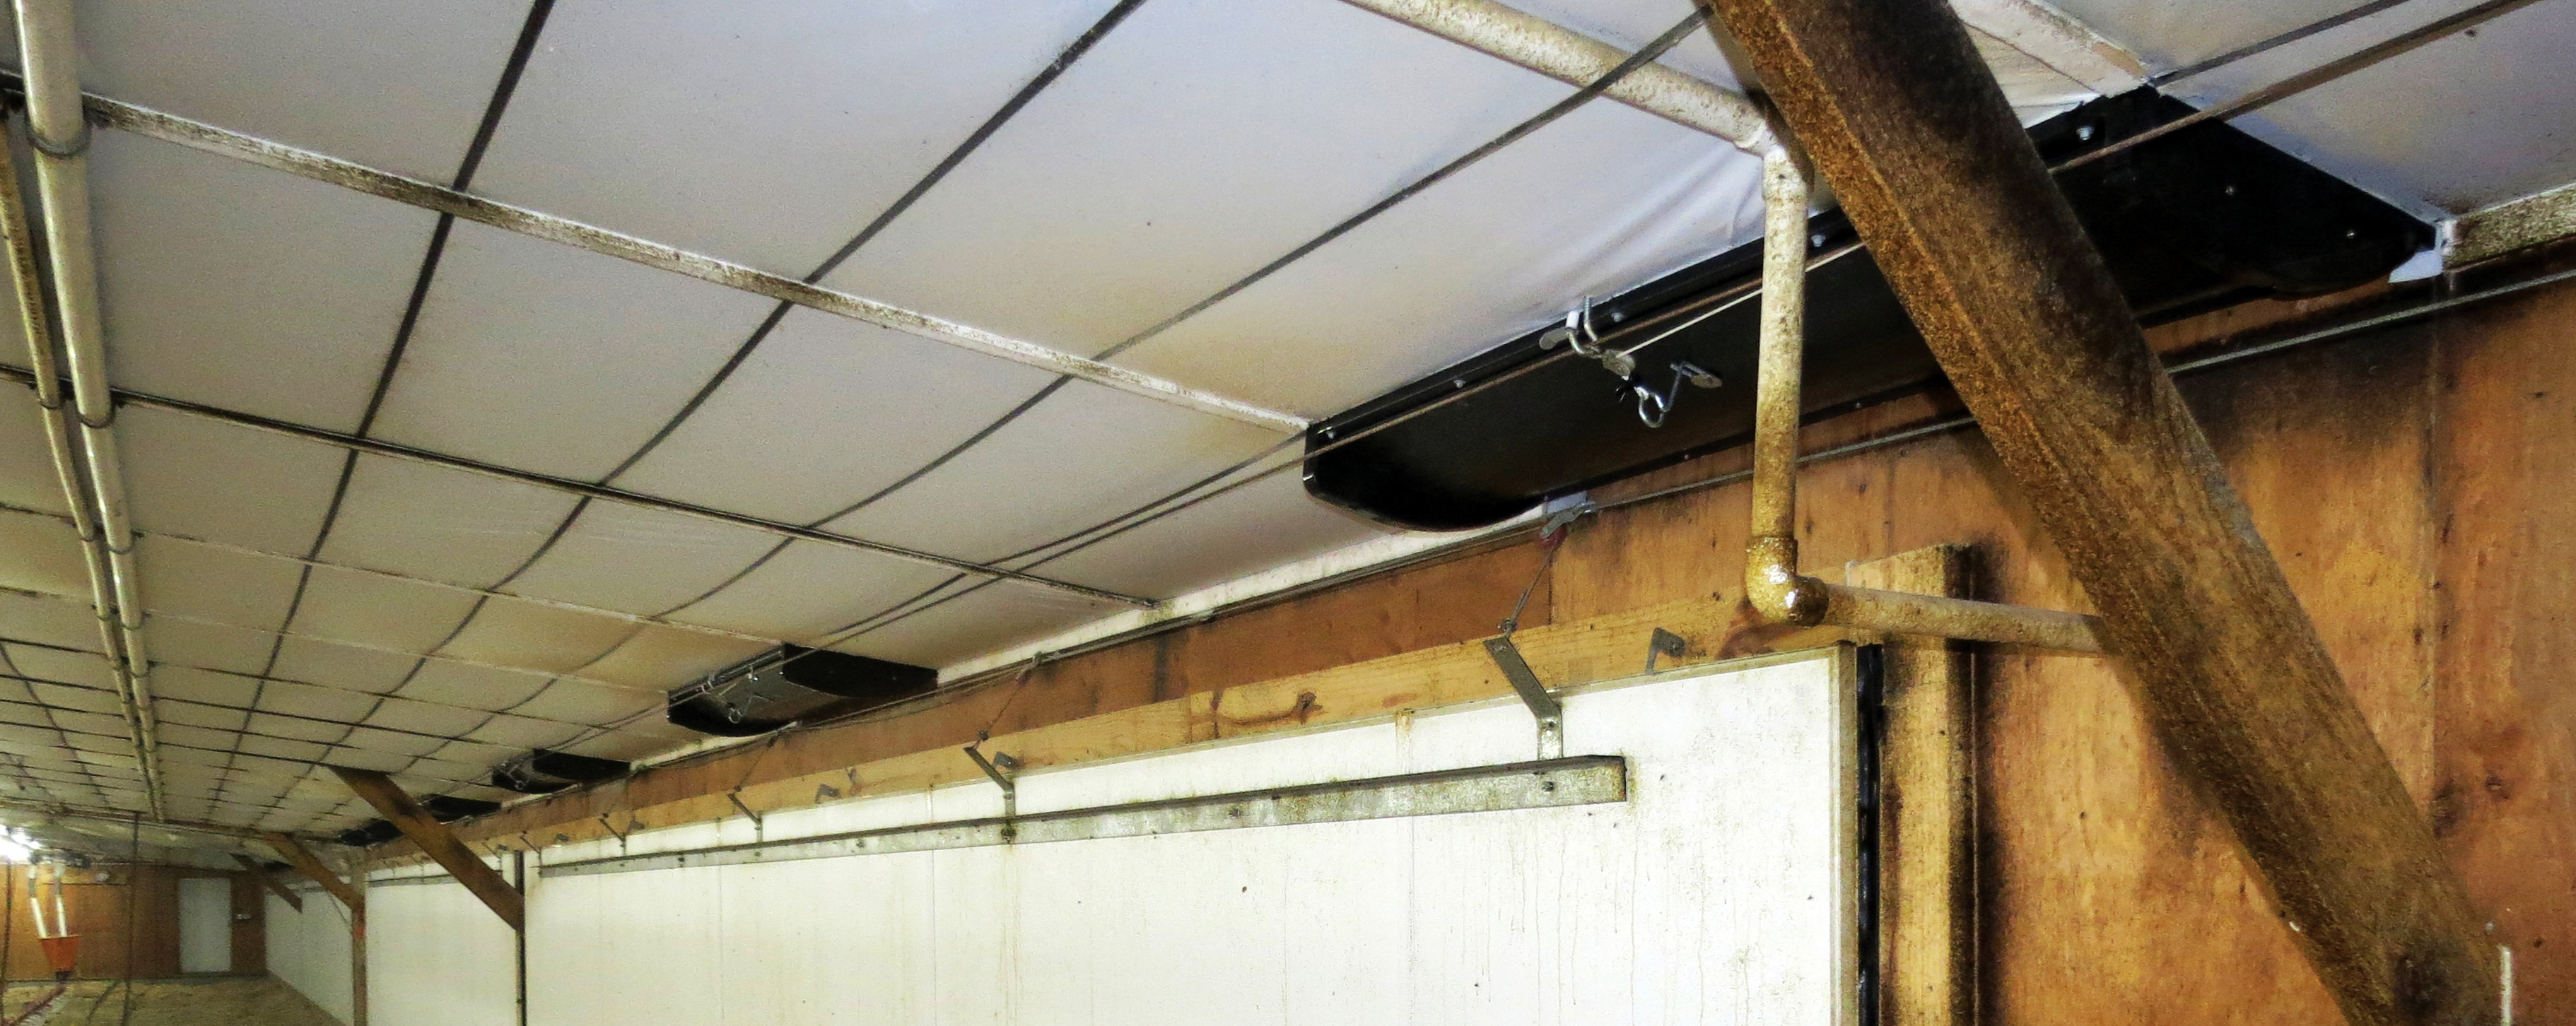 CSW4612 Ceiling Sidewall Inlet in Poultry House